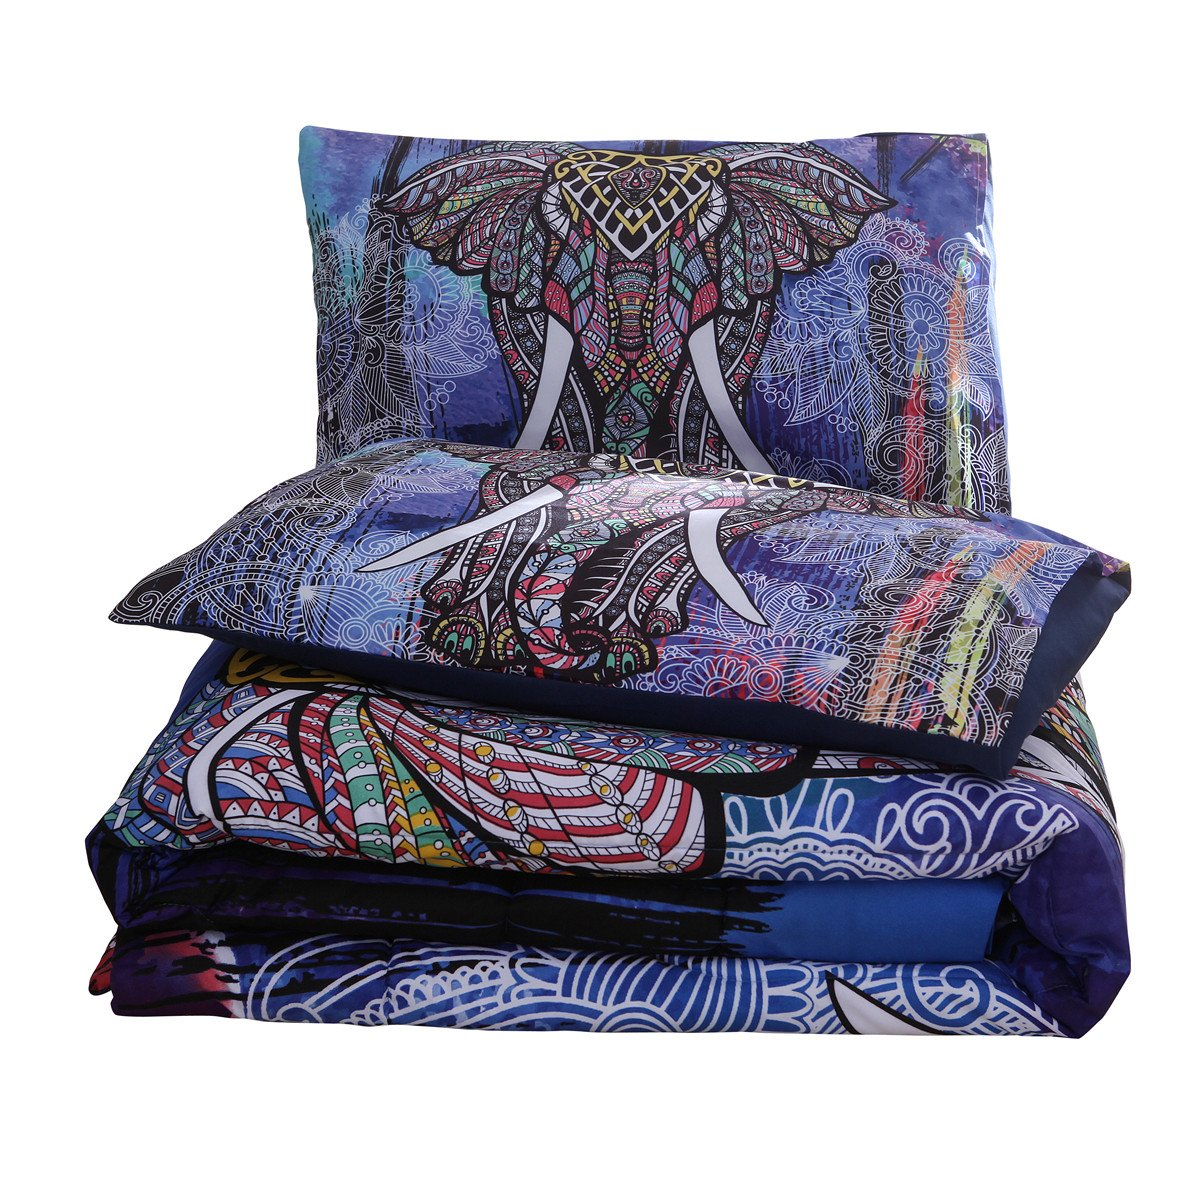 NTBED Bohemian Comforter Set Queen 3-Piece Microfiber Bedding Exotic Elephant Boho Mandala Quilt Sets, Multi by NTBED (Image #8)